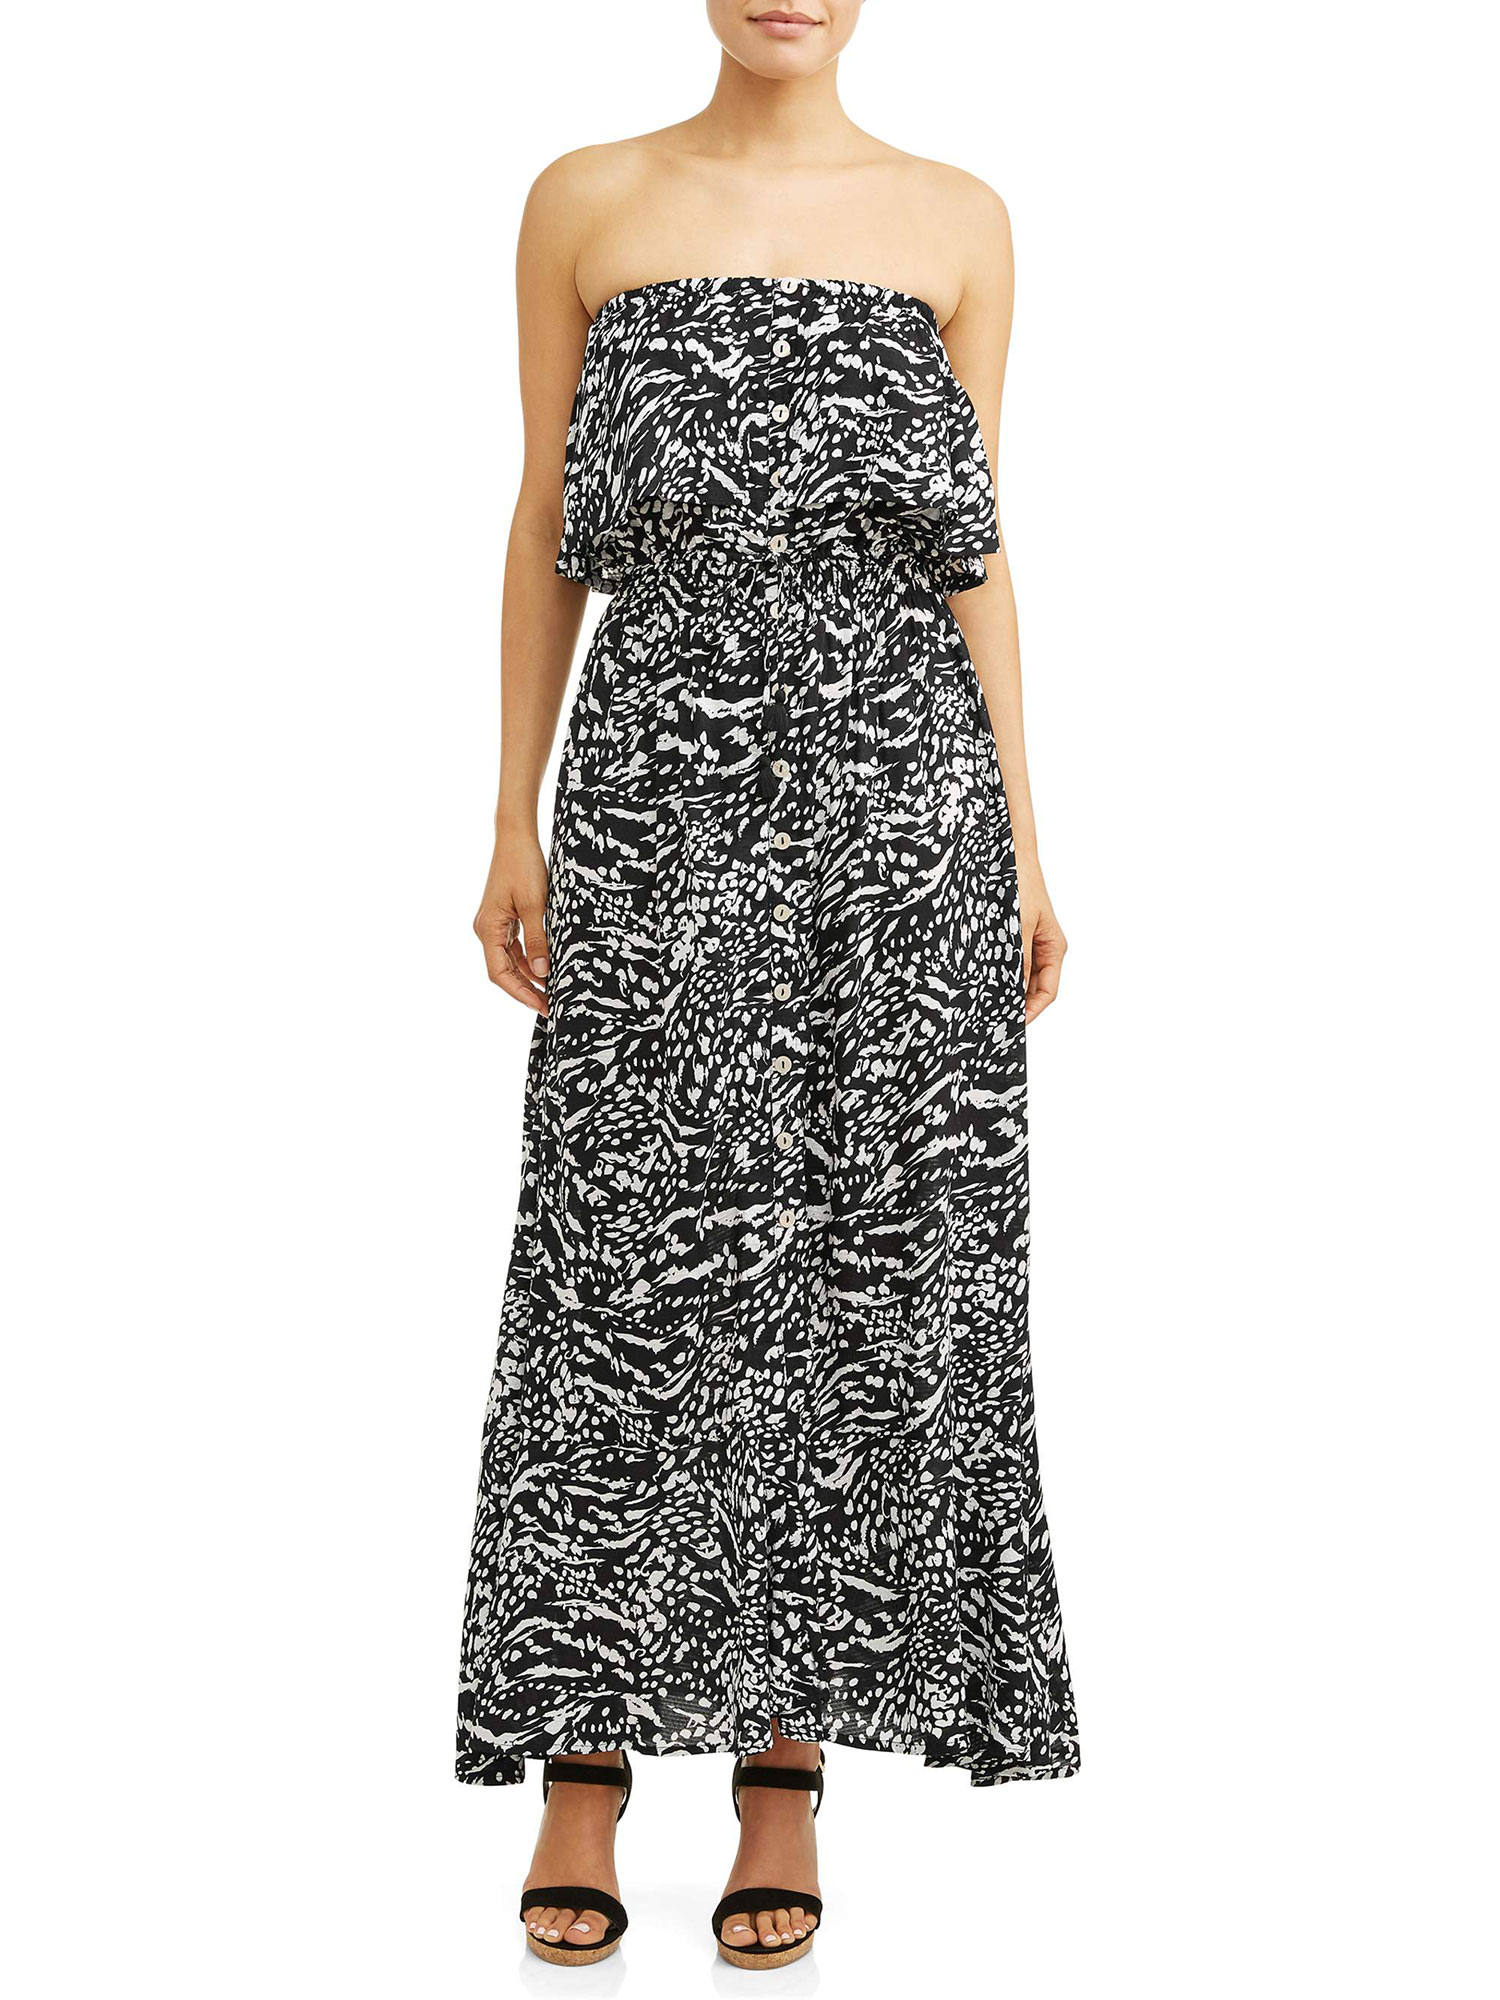 Sofia Vergara Spring Collection walmart - Go from day to night in this flirty maxi dress.